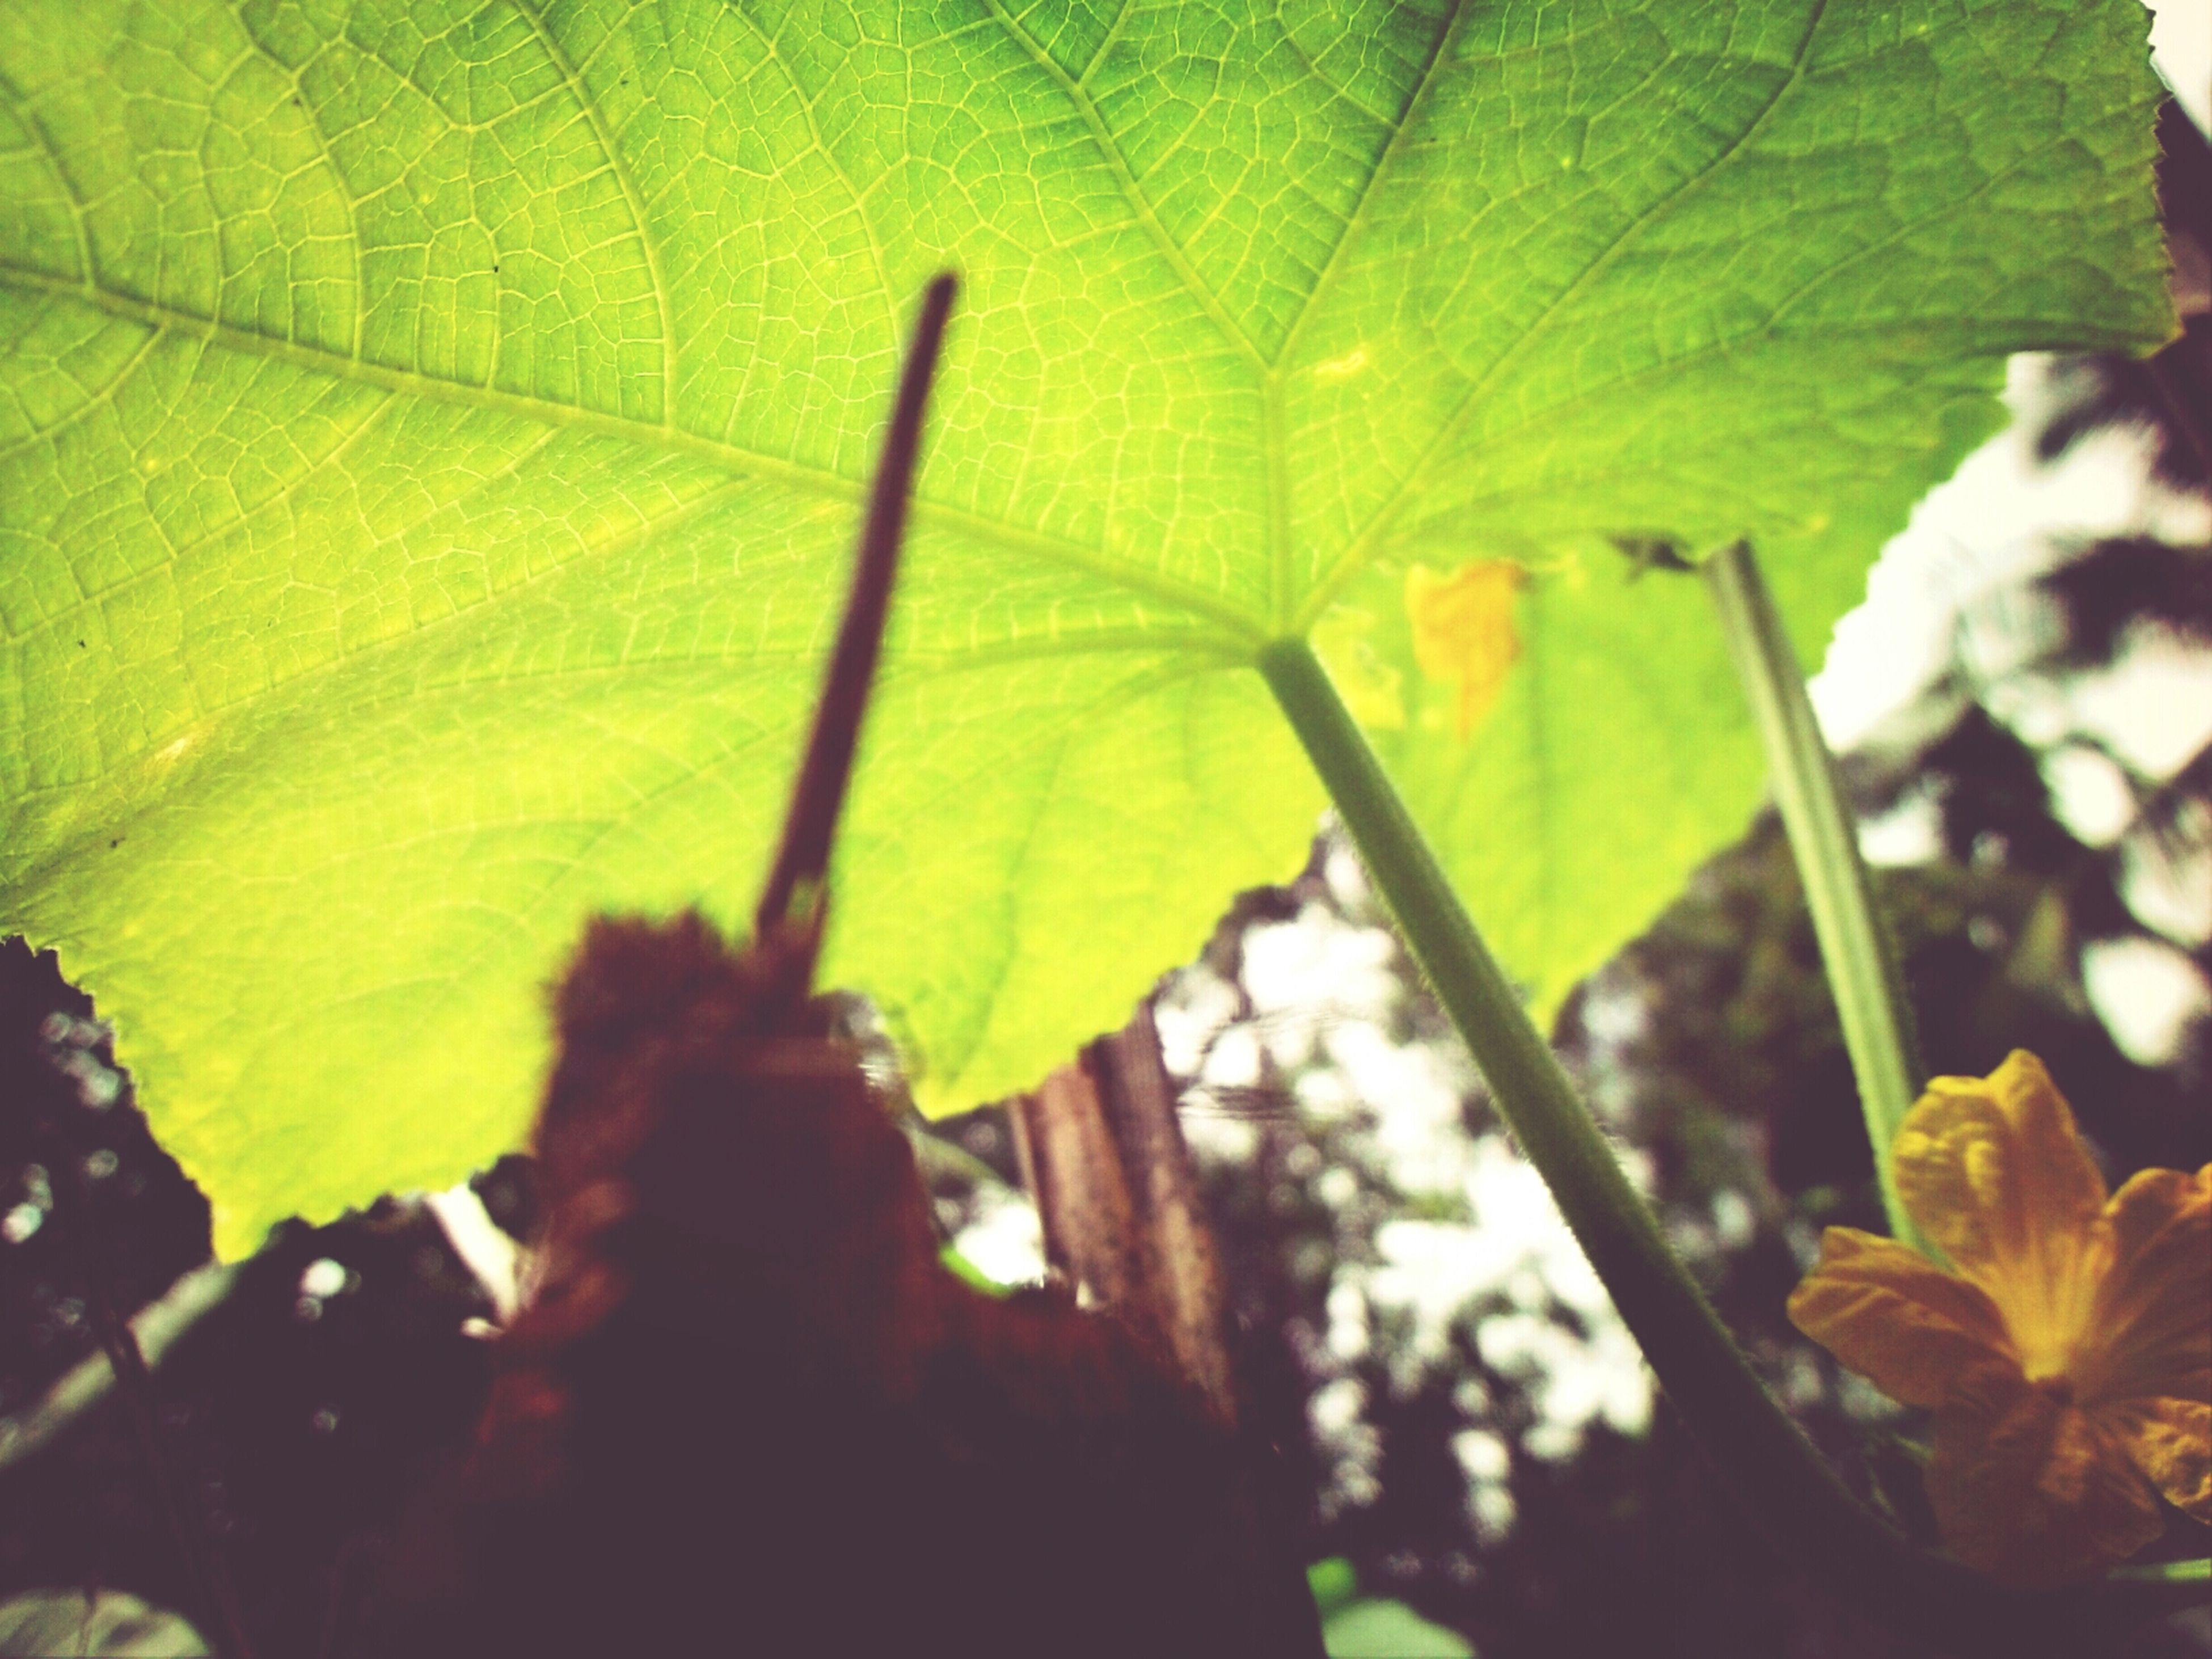 leaf, growth, yellow, leaf vein, nature, close-up, fragility, plant, green color, flower, beauty in nature, focus on foreground, sunlight, outdoors, freshness, day, leaves, selective focus